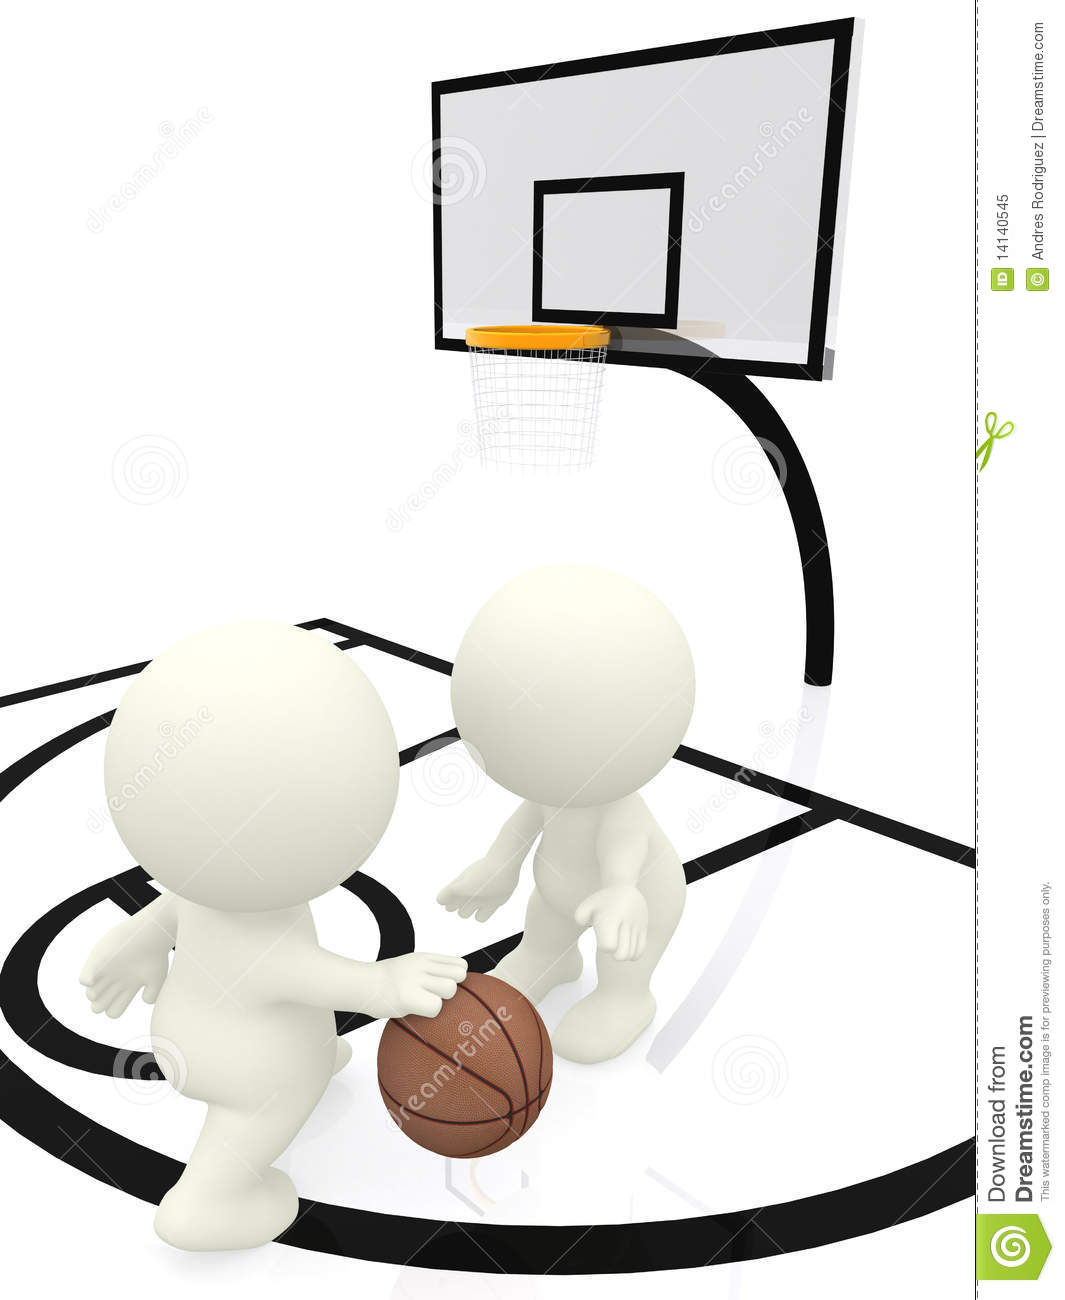 3d People Bouncing Basketball Royalty Free Stock Photo   Image